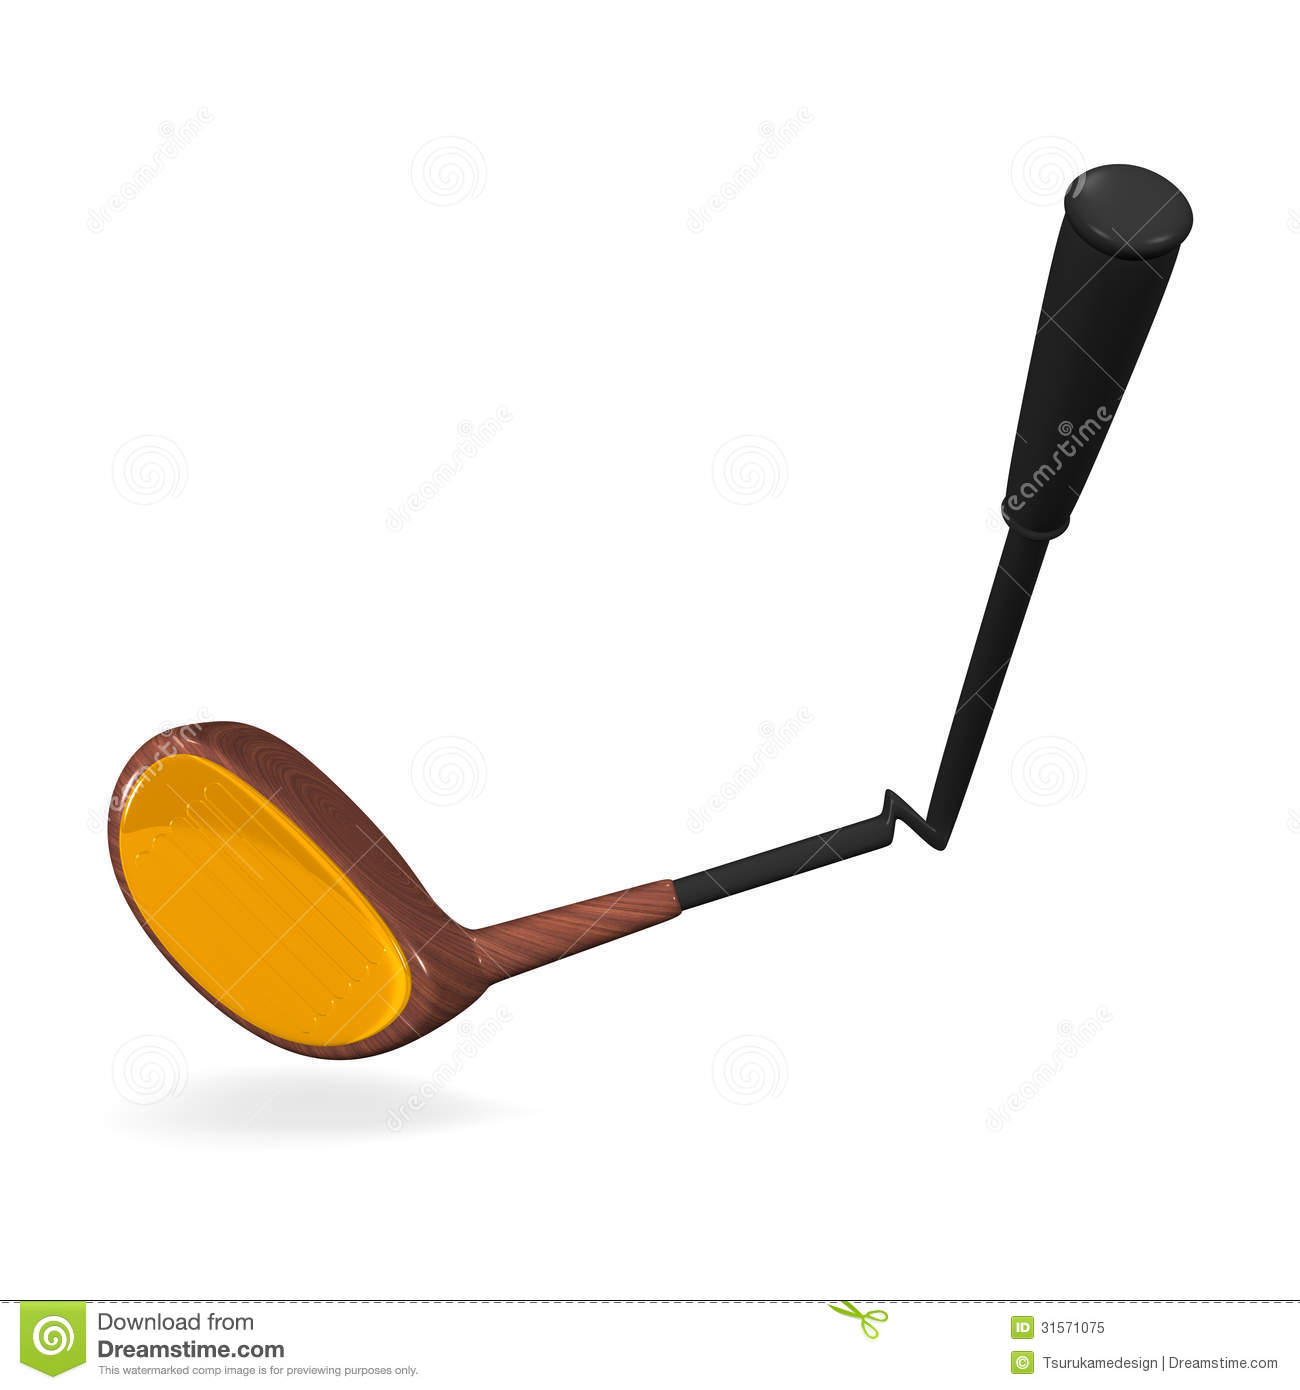 Broken Golf Club Royalty Free Stock Photo - Image: 31571075